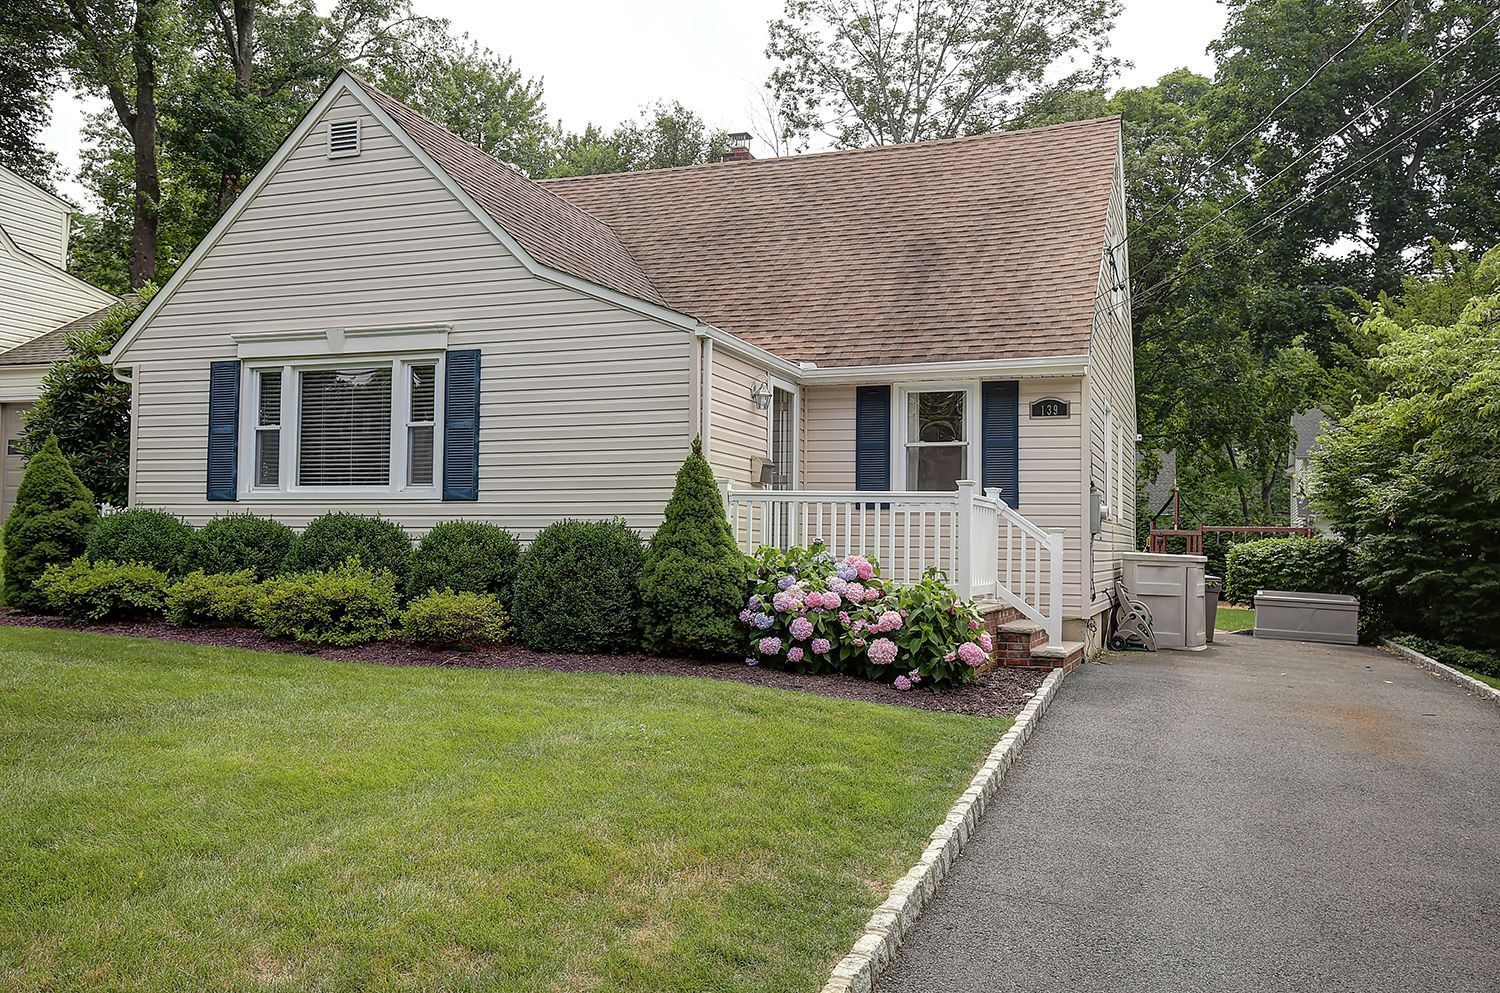 139 The Fellsway In New Providence Nj Listed For Sale By The Wmh